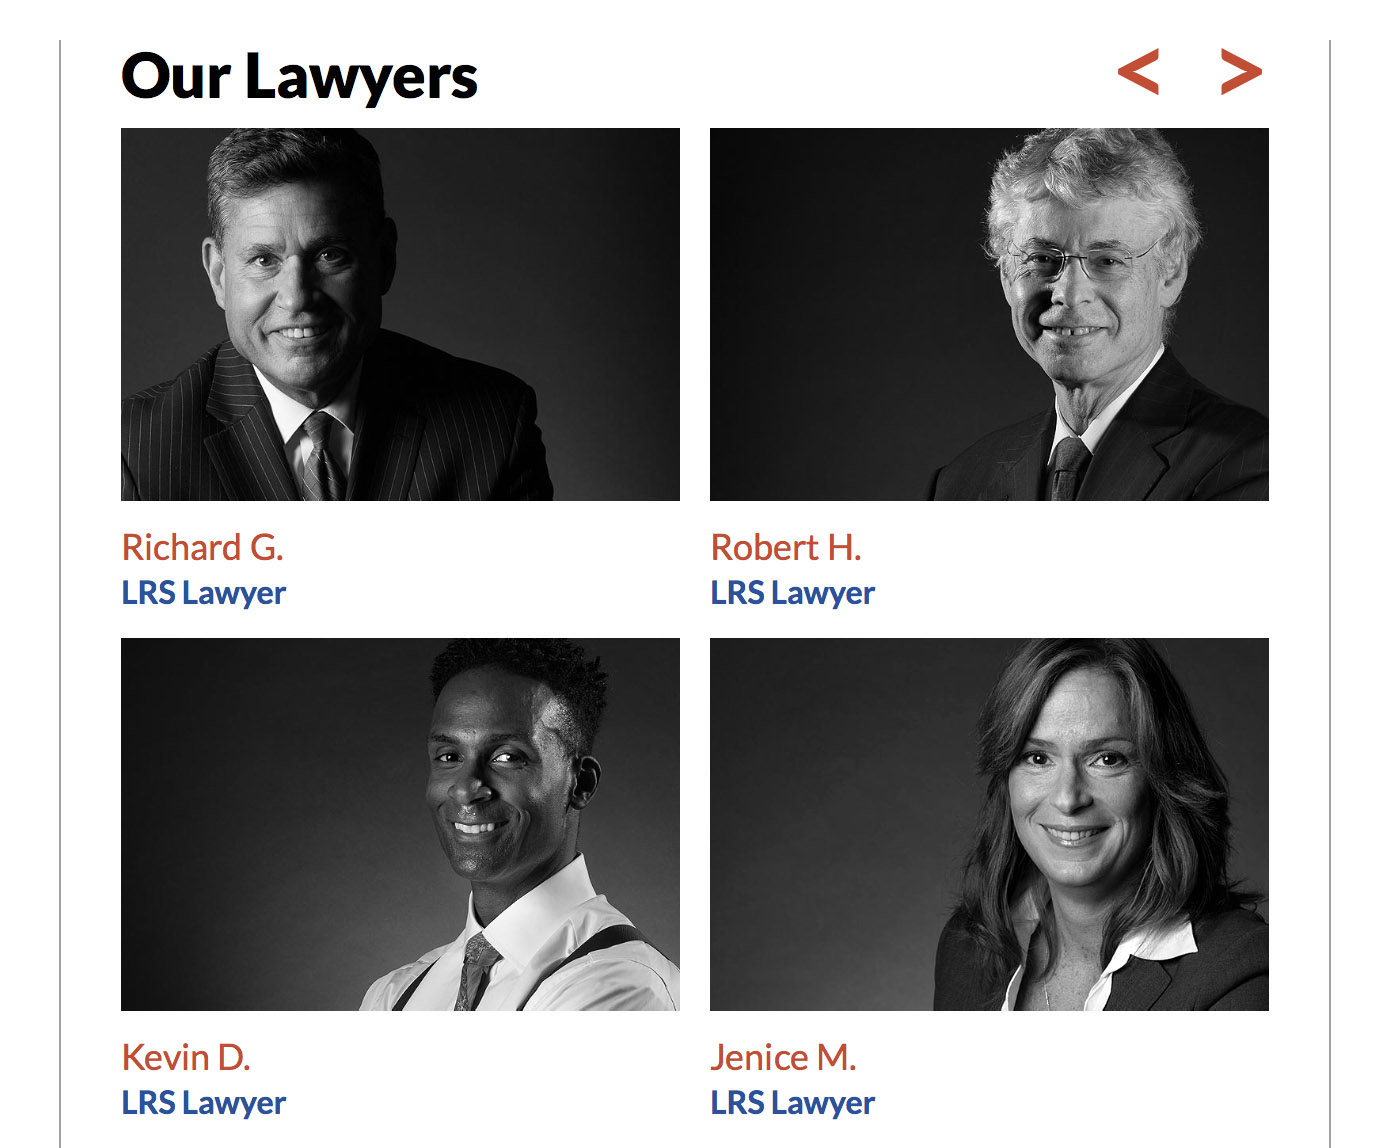 Lawyer portraits